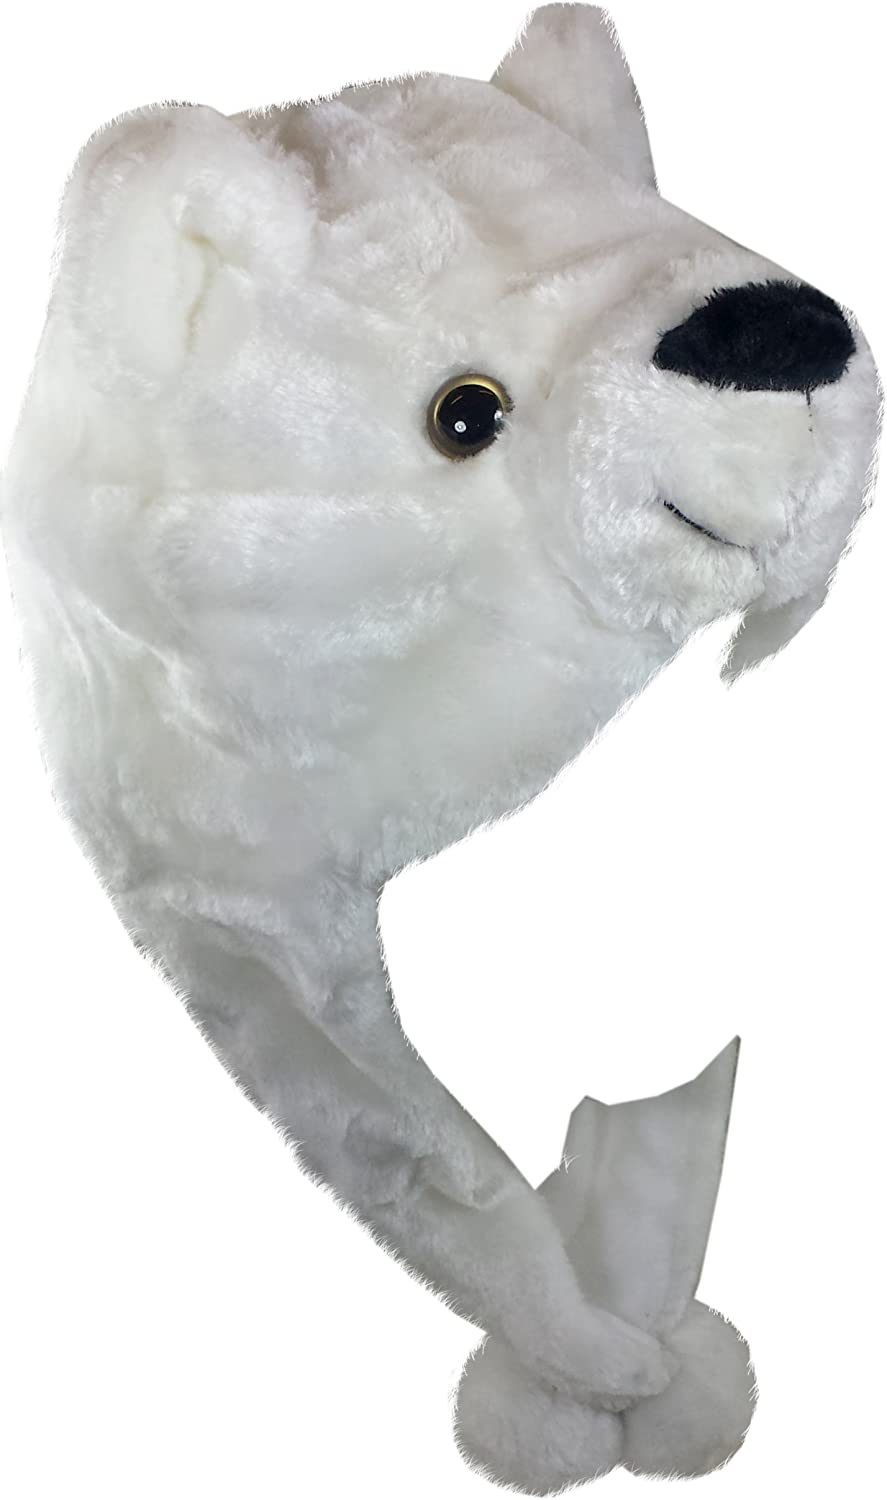 lowest price Critter Caps Outlet sale feature Plush Animal Hat with That T Ear Under Button Flaps